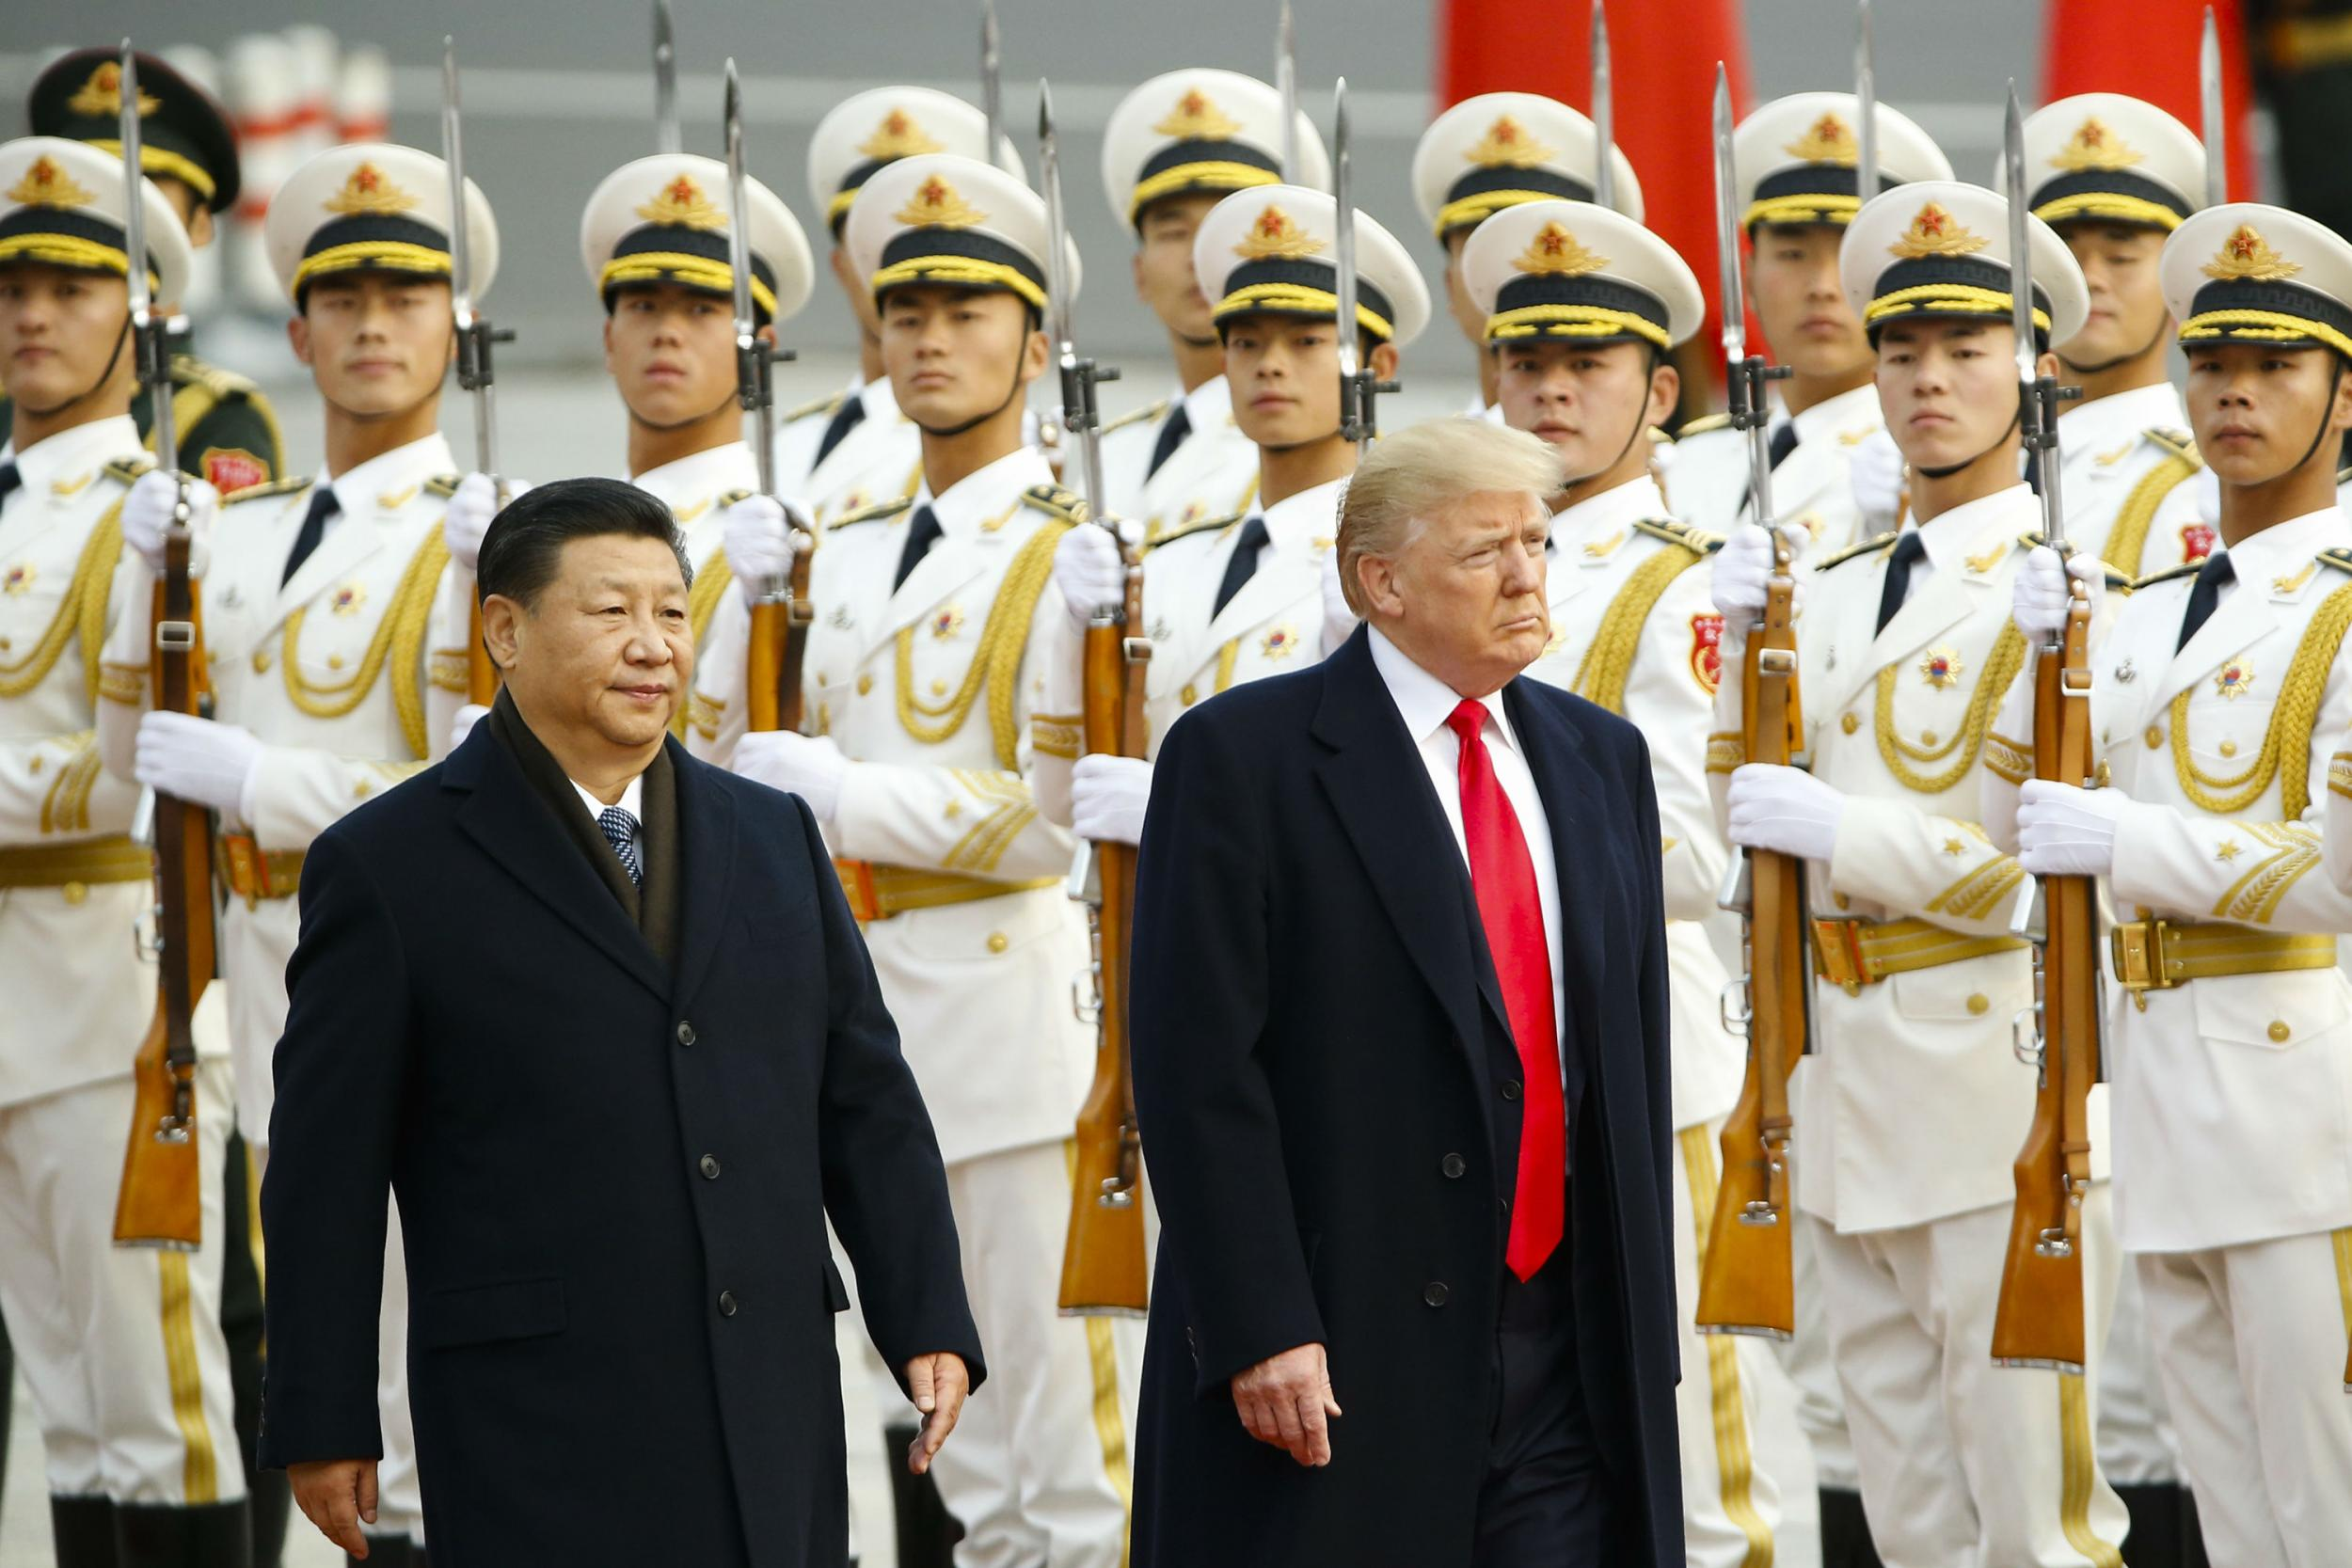 Donald Trump has finally bitten off more than he can chew in this trade war with China